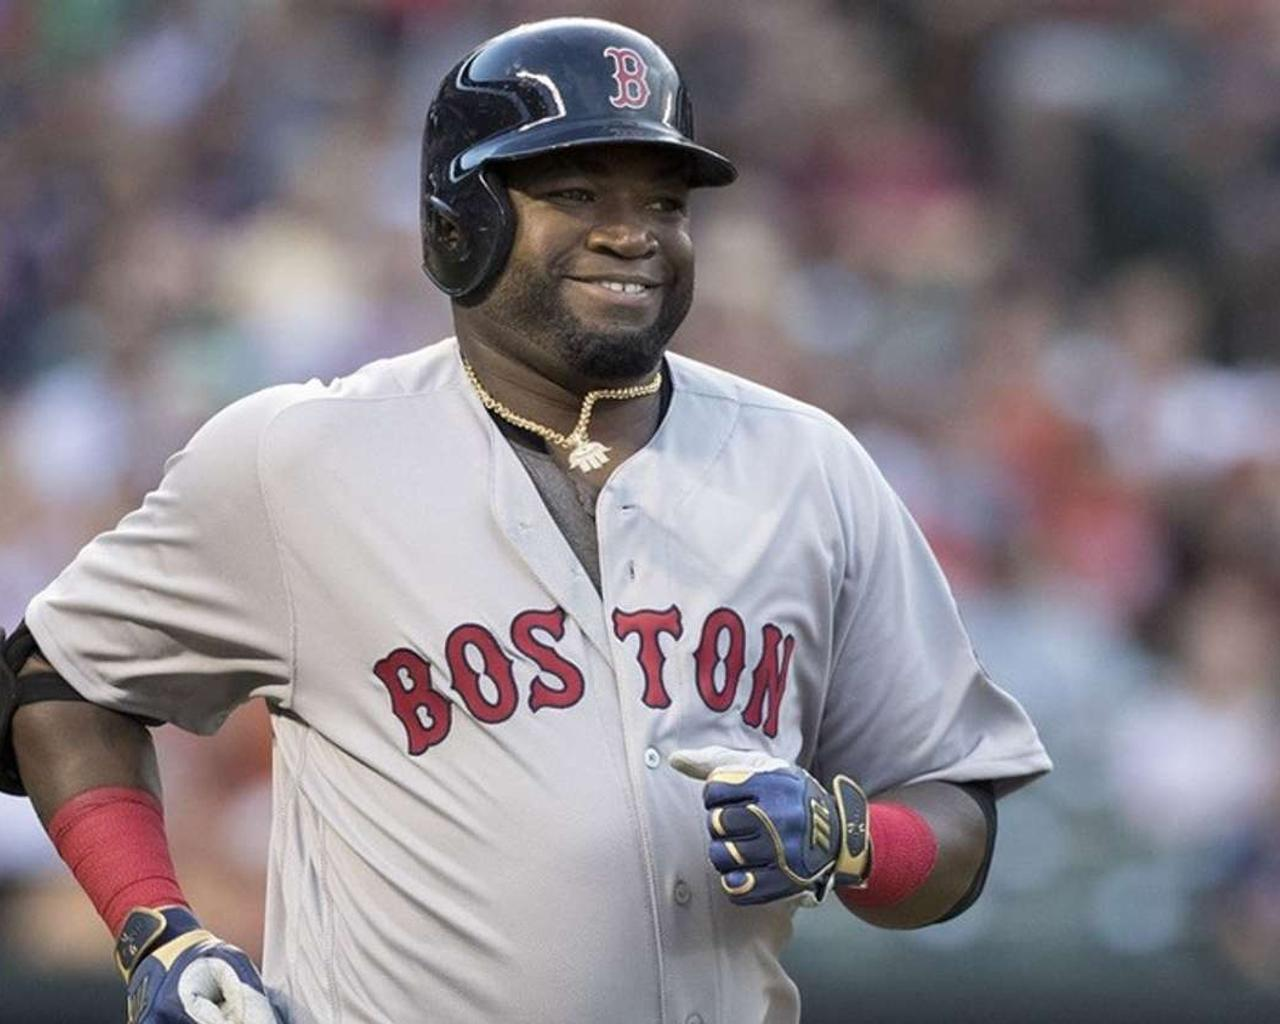 David Ortiz Is Doing Better After Shooting Incident — He Is Back In America; Fans Are Still Looking For Answers